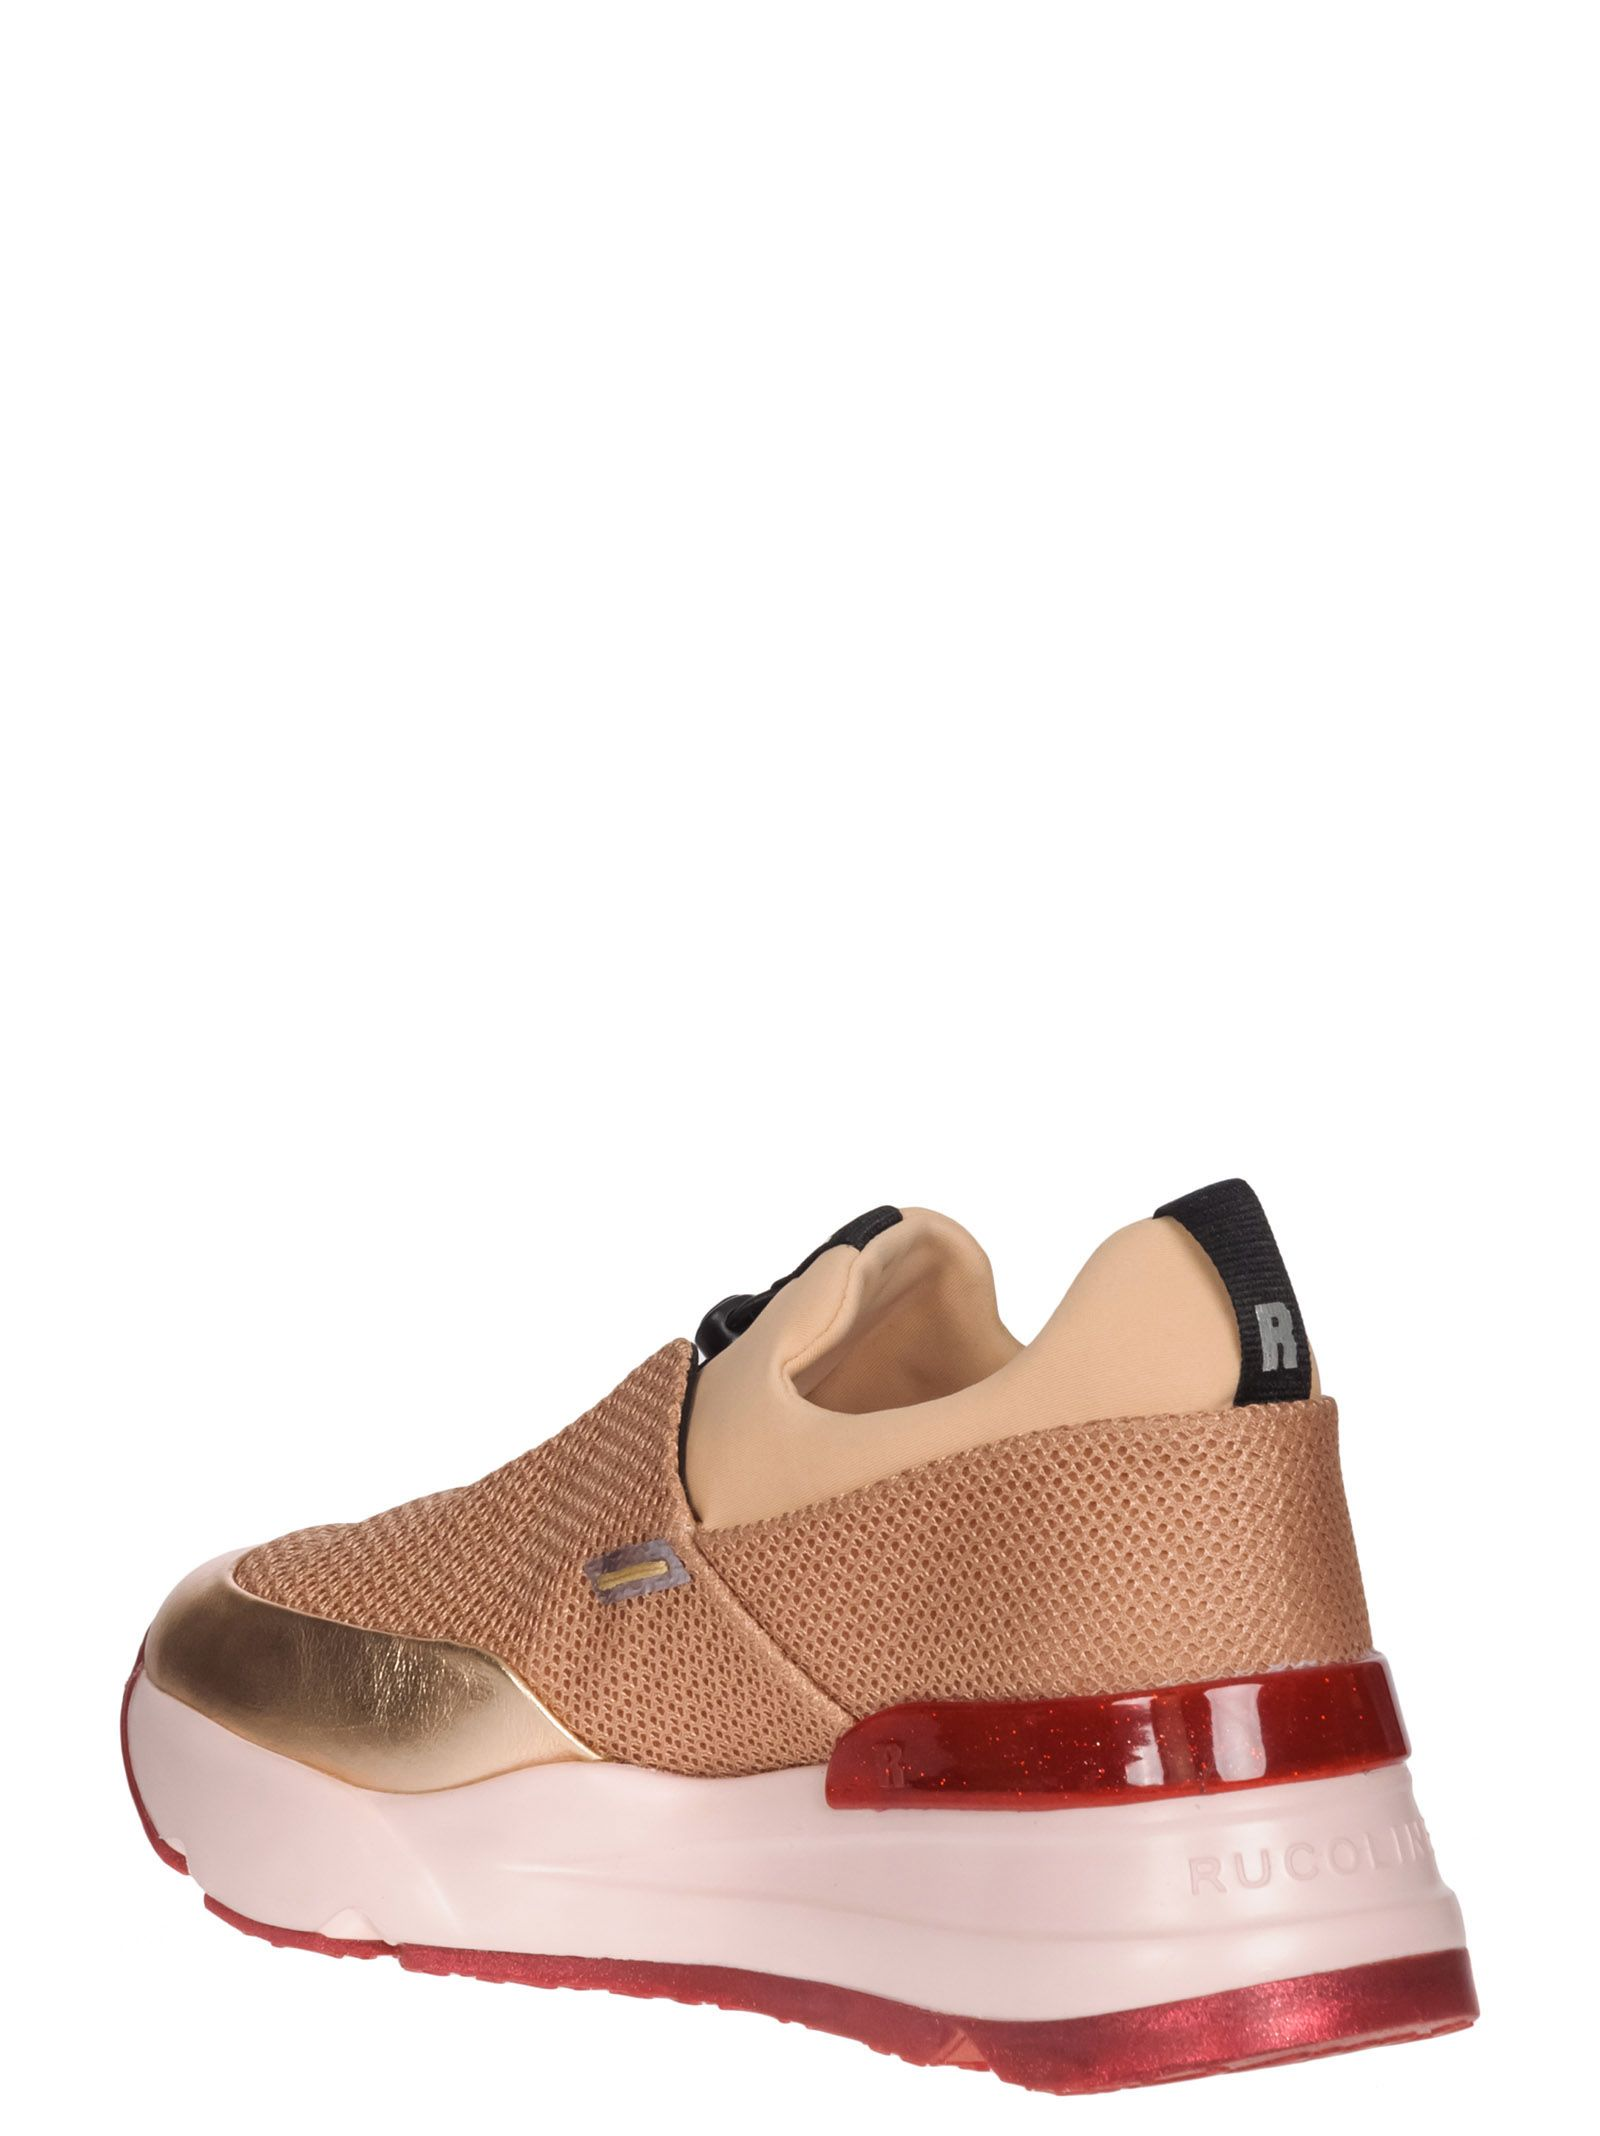 """RUCO LINE Rucoline Sneakers """"Essentiel"""" Net And Skin Pink Color in Nude"""